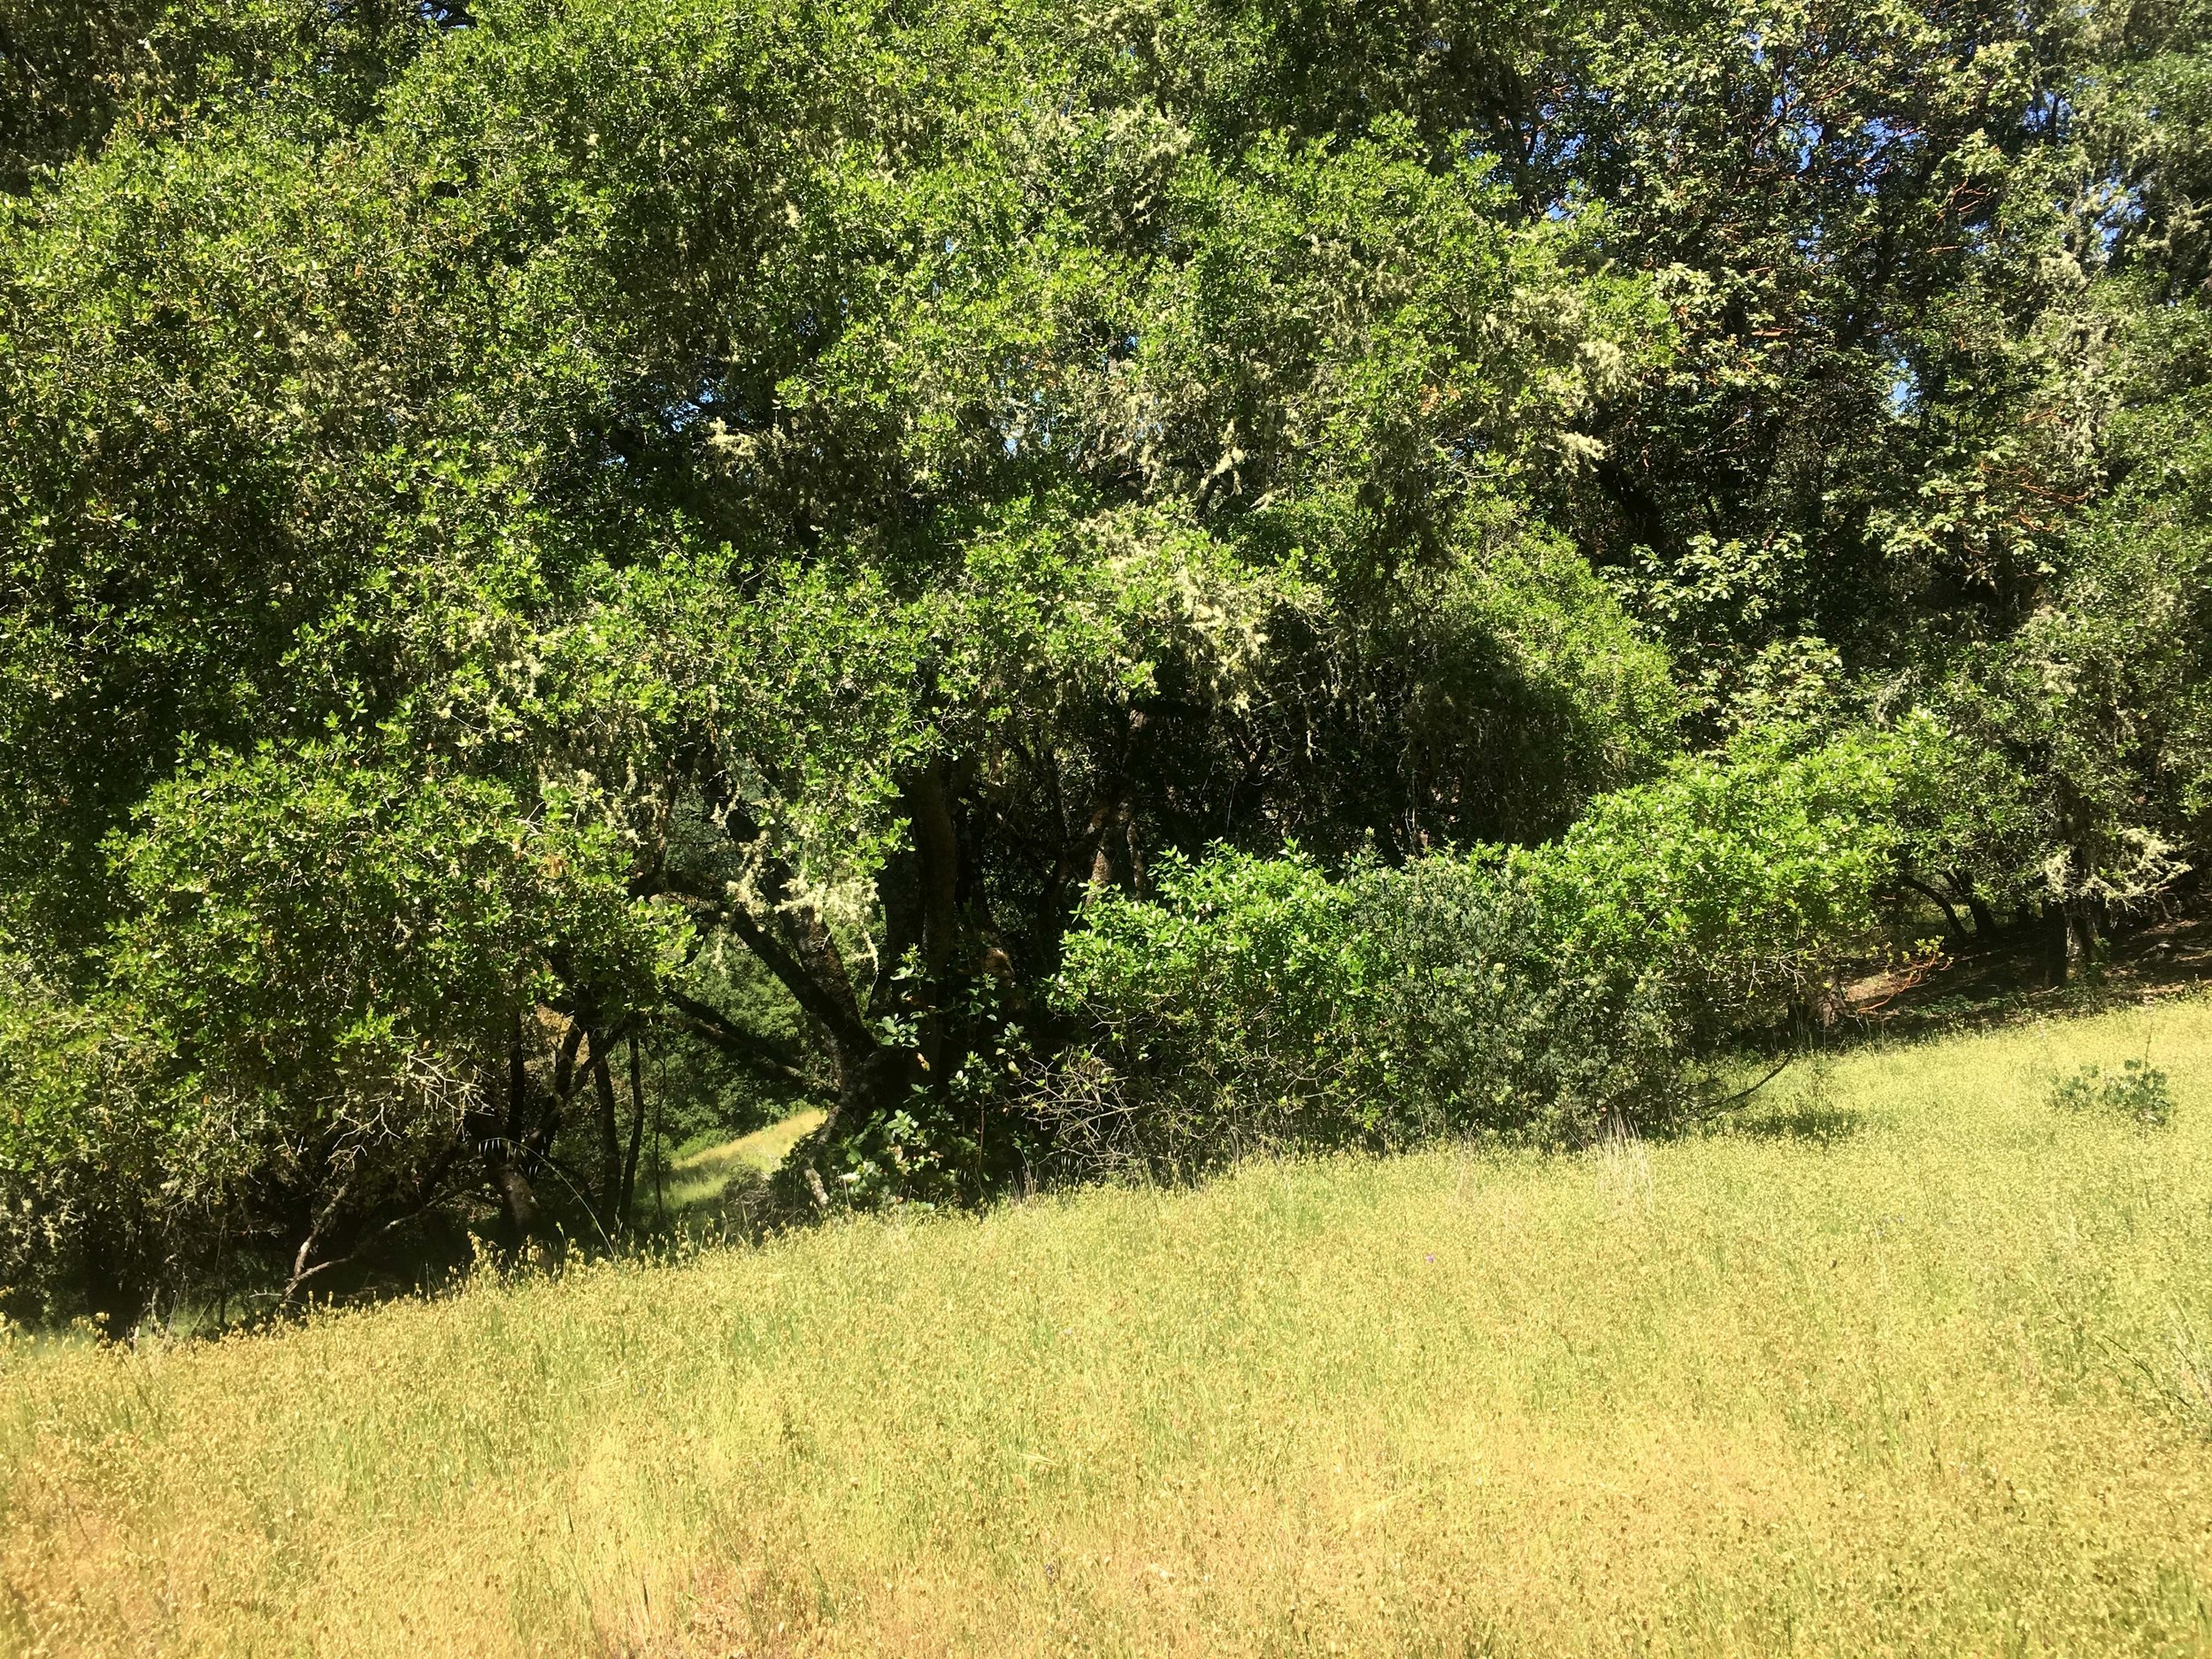 Contrasting forest and meadow on 40ac parcel in Mendocino County near Hopland and Yorkville.